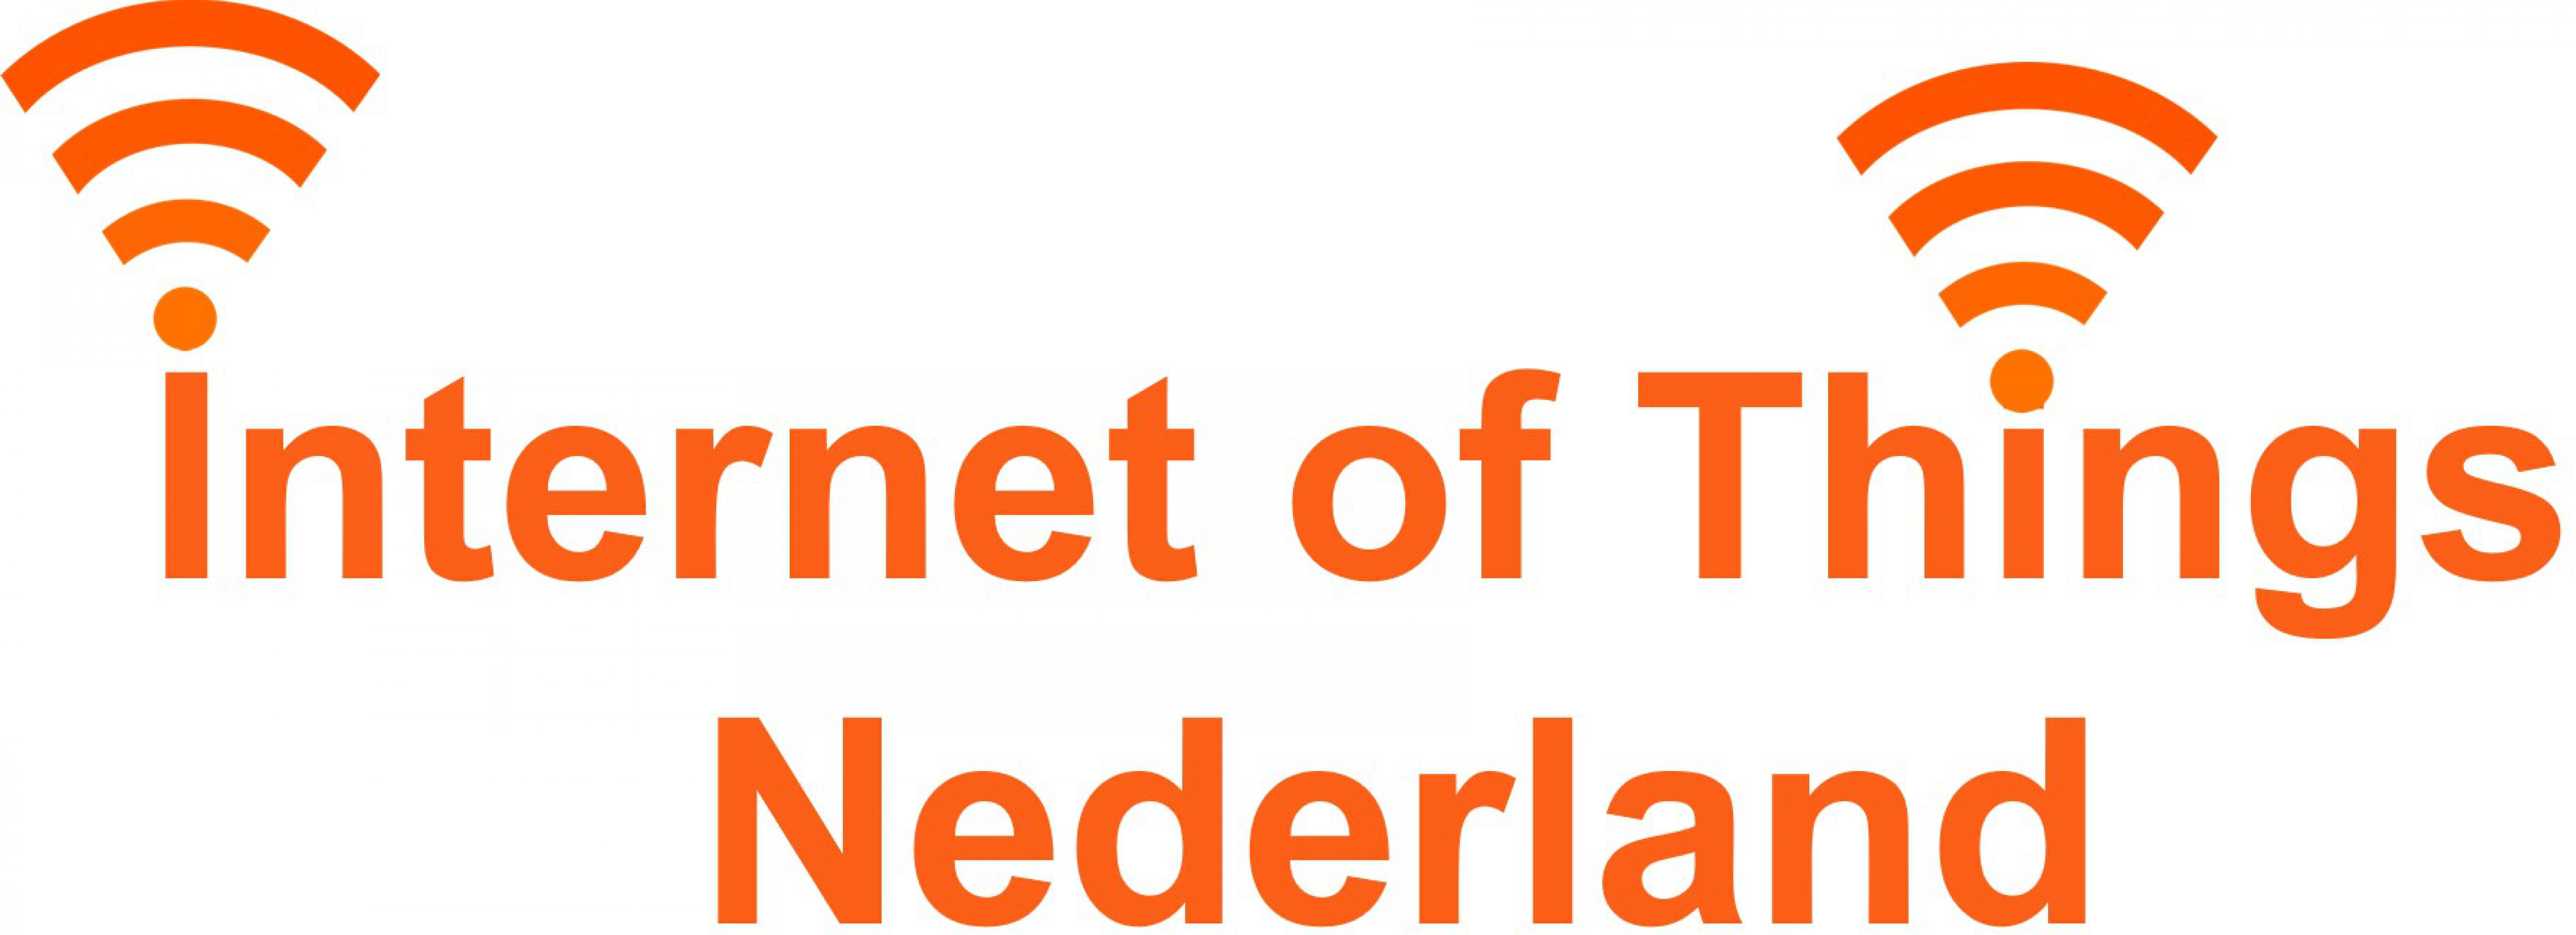 cropped-cropped-internet-of-things-nederland1.jpg